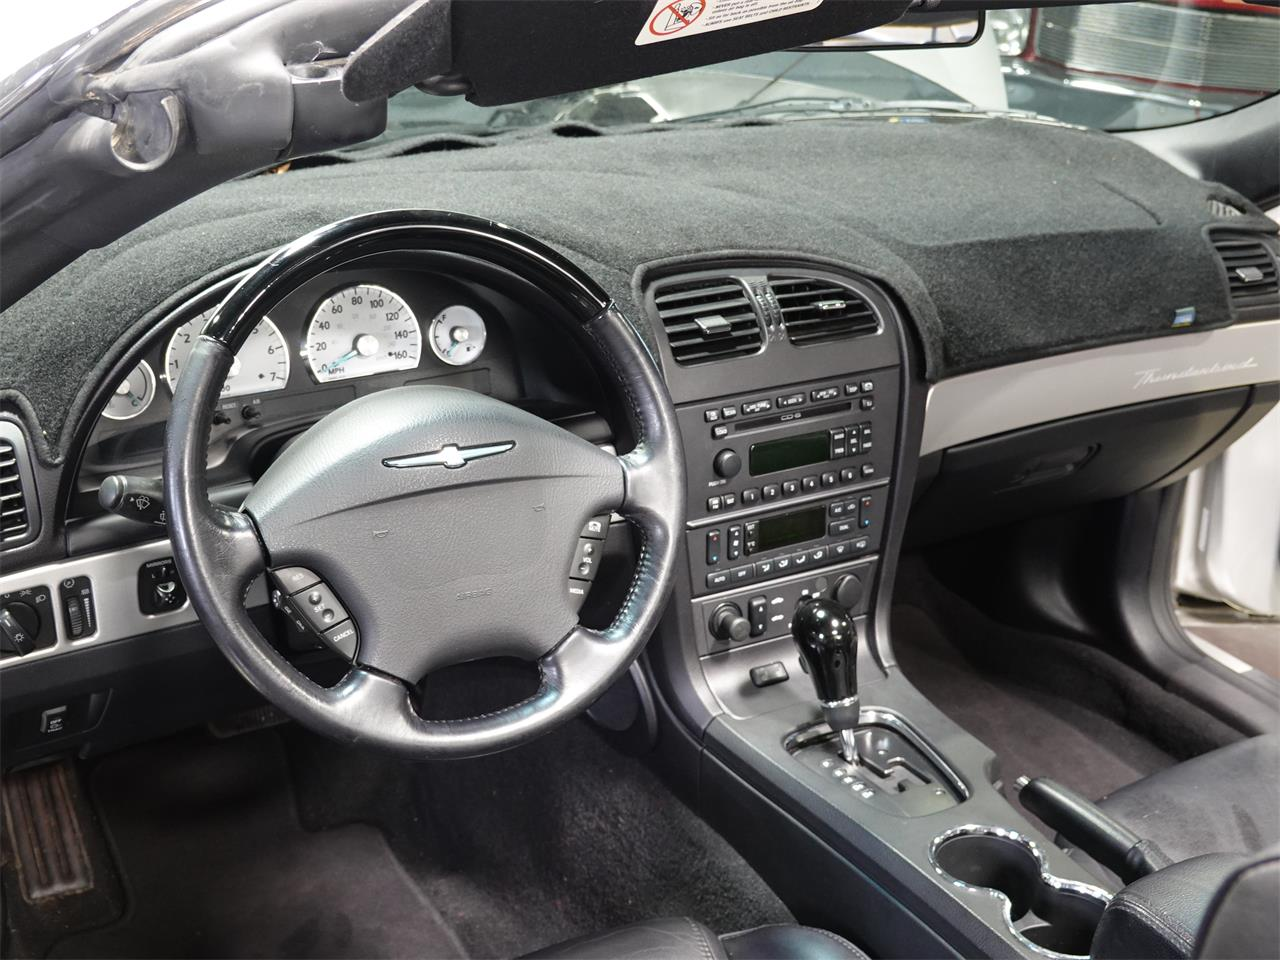 2005 Ford Thunderbird (CC-1313114) for sale in Pittsburgh, Pennsylvania